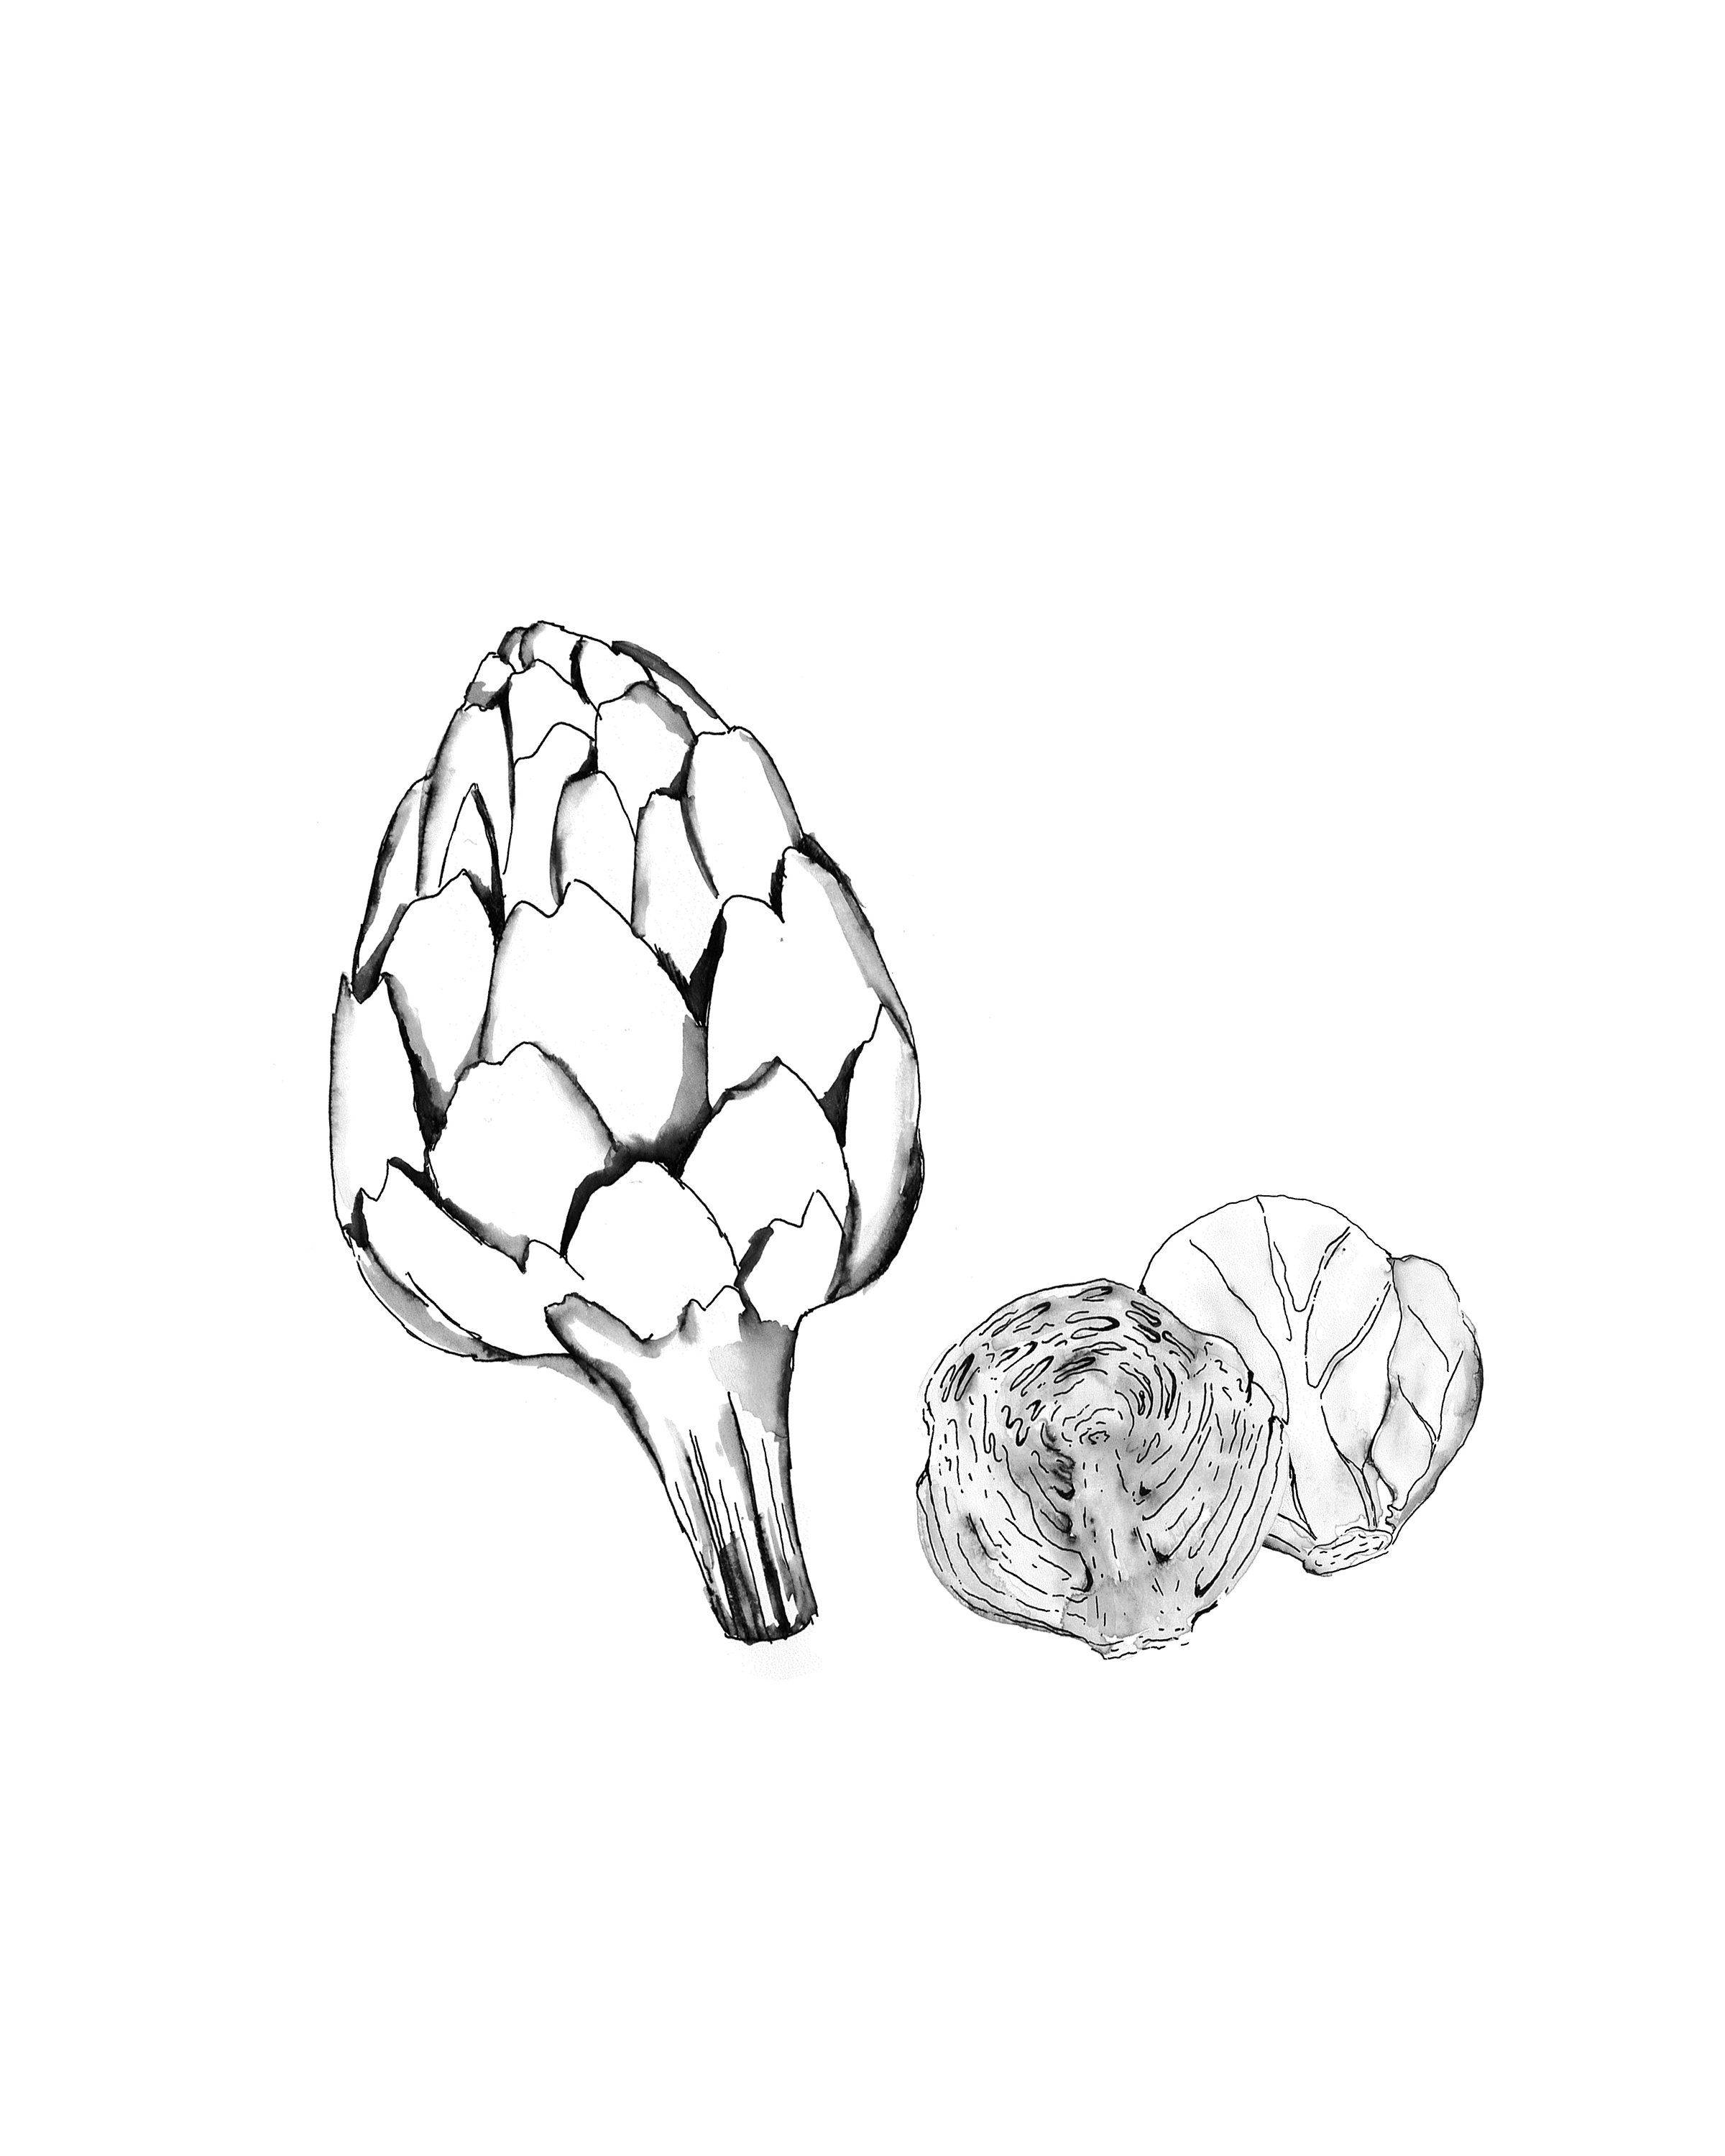 Artichoke and Brusell Sprouts